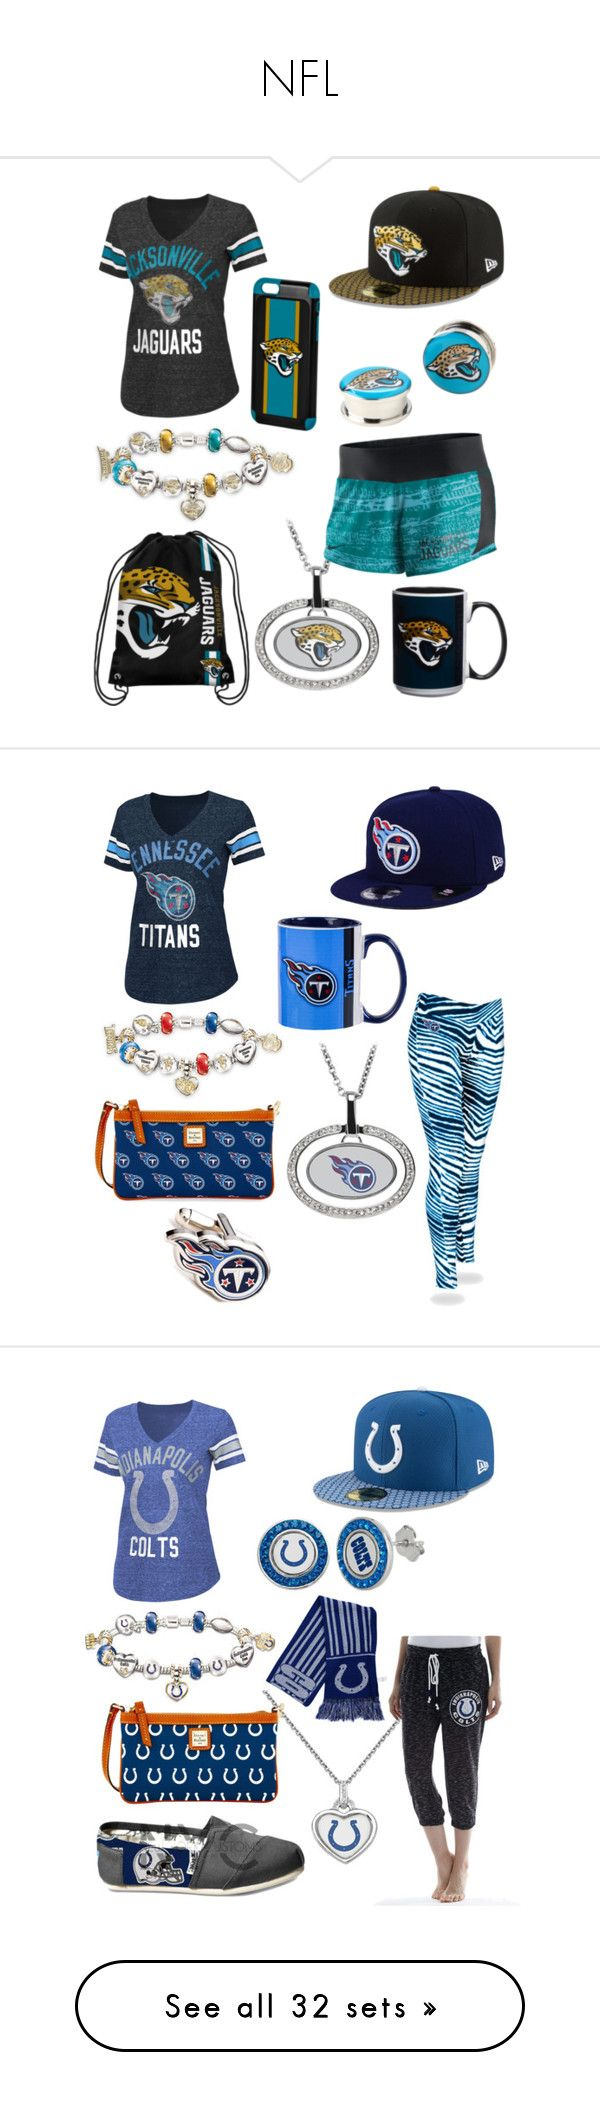 """""""NFL"""" by amy-stroud ❤ liked on Polyvore featuring The Bradford Exchange, G-III, Forever Collectibles, NIKE, New Era, Hot Topic, The Memory Company, Zubaz, Dooney & Bourke and Cufflinks, Inc."""